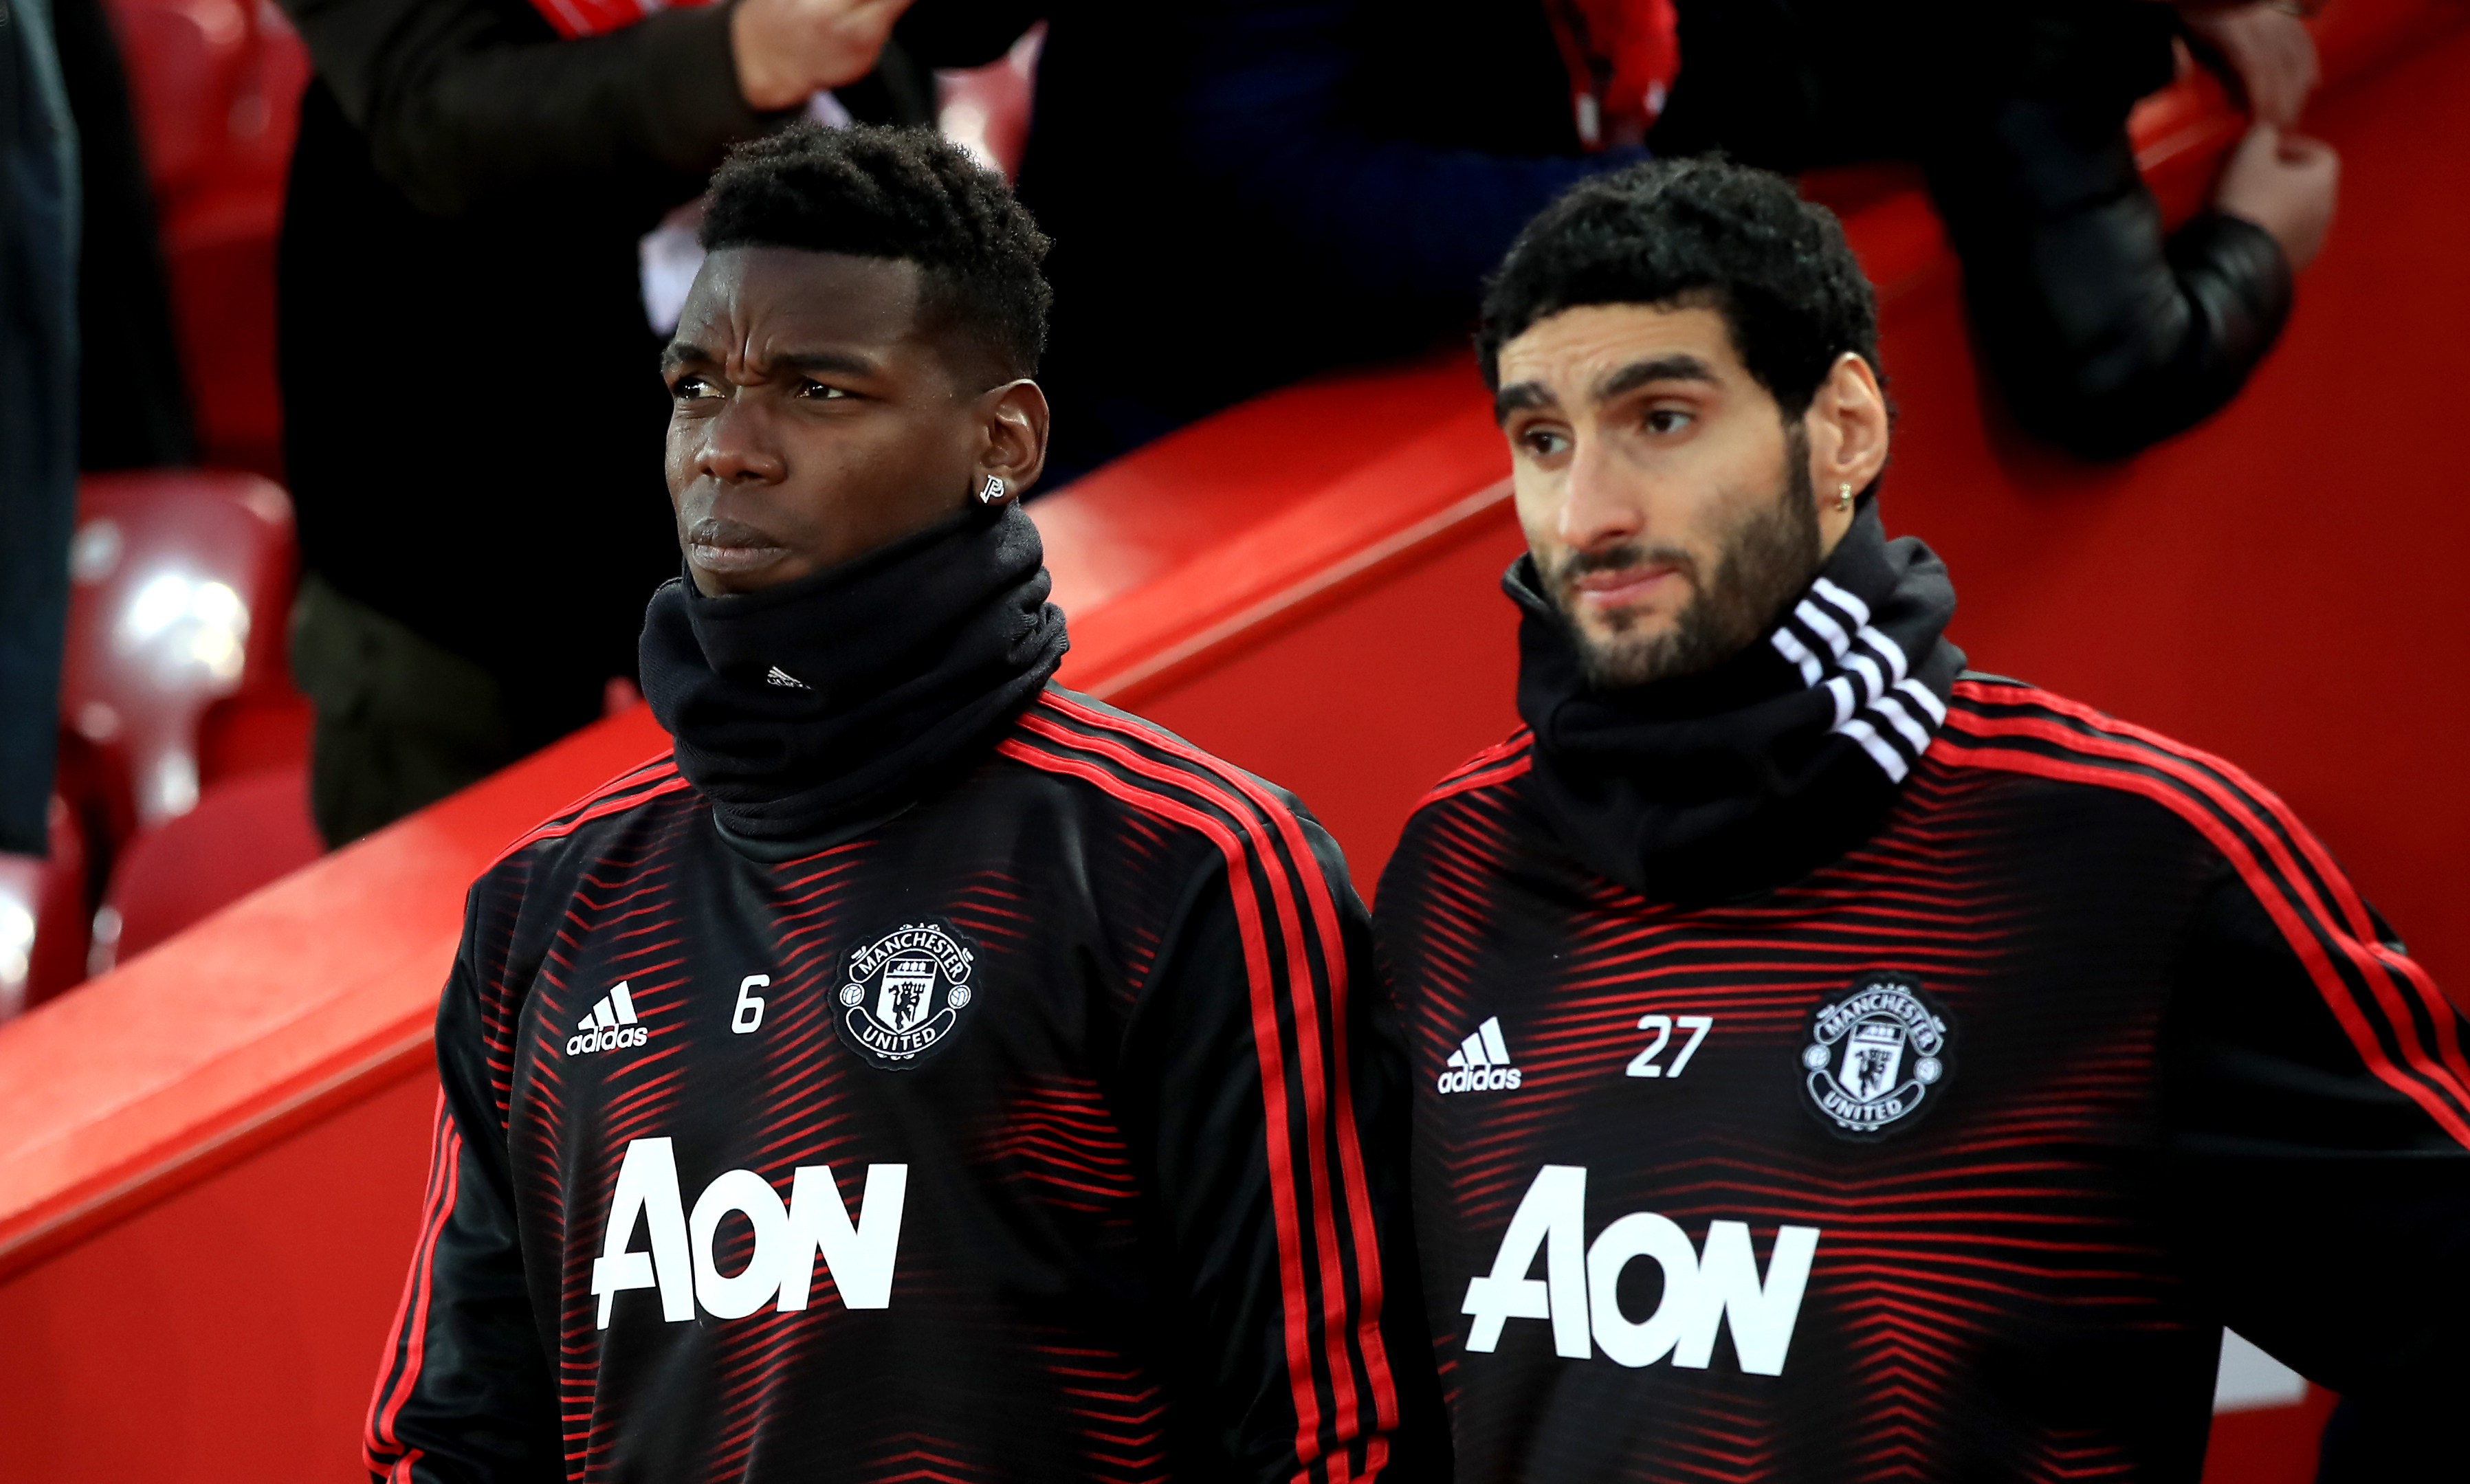 The low point for Pogba was being left on the bench against Liverpool. His form improved but was gone by the end of the season. Image: PA Images